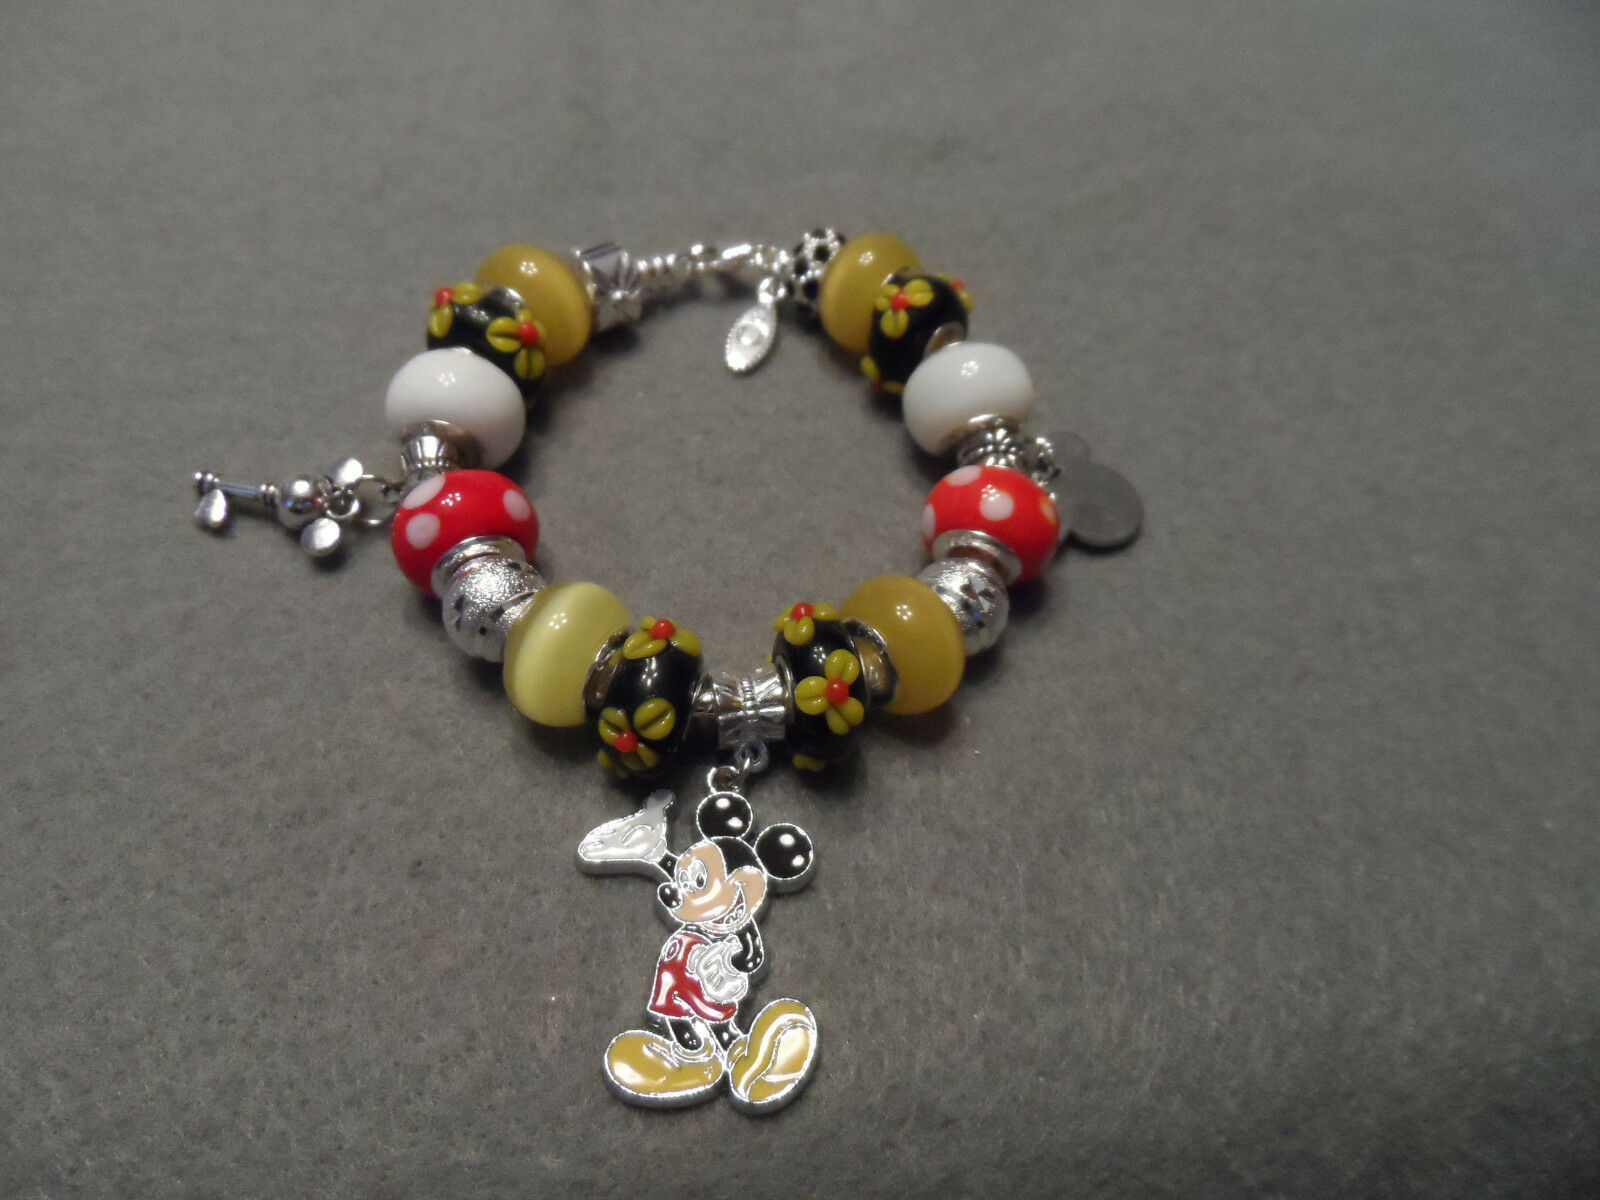 Authentic Pandora bracelet with Disney Mickey Mouse themed beads